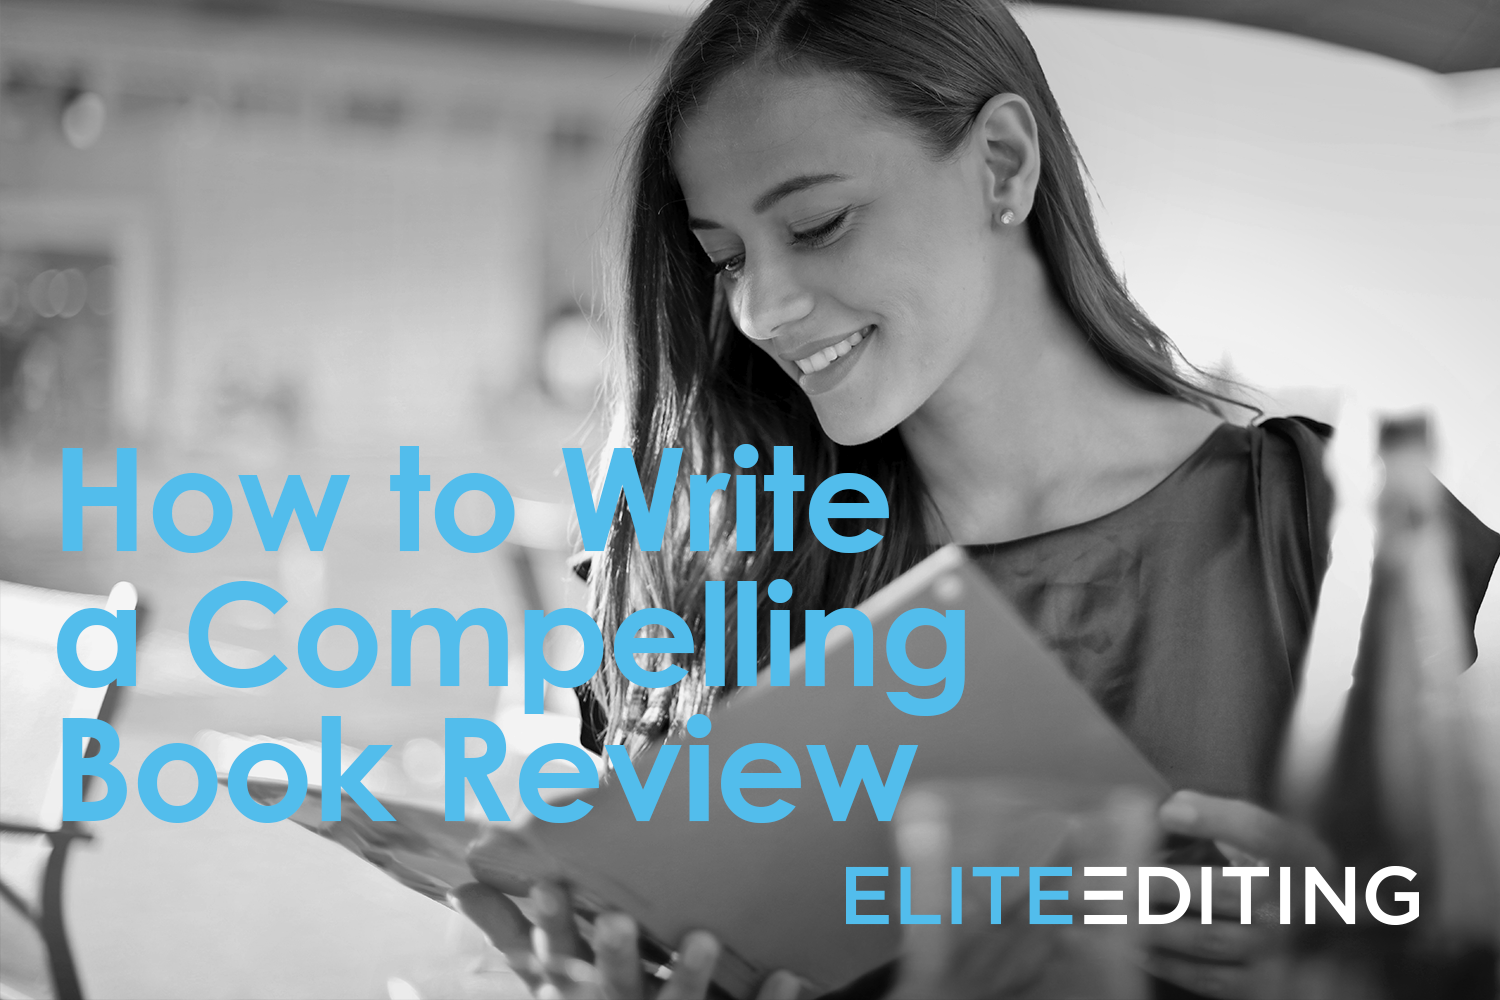 How to Write a Compelling Book Review